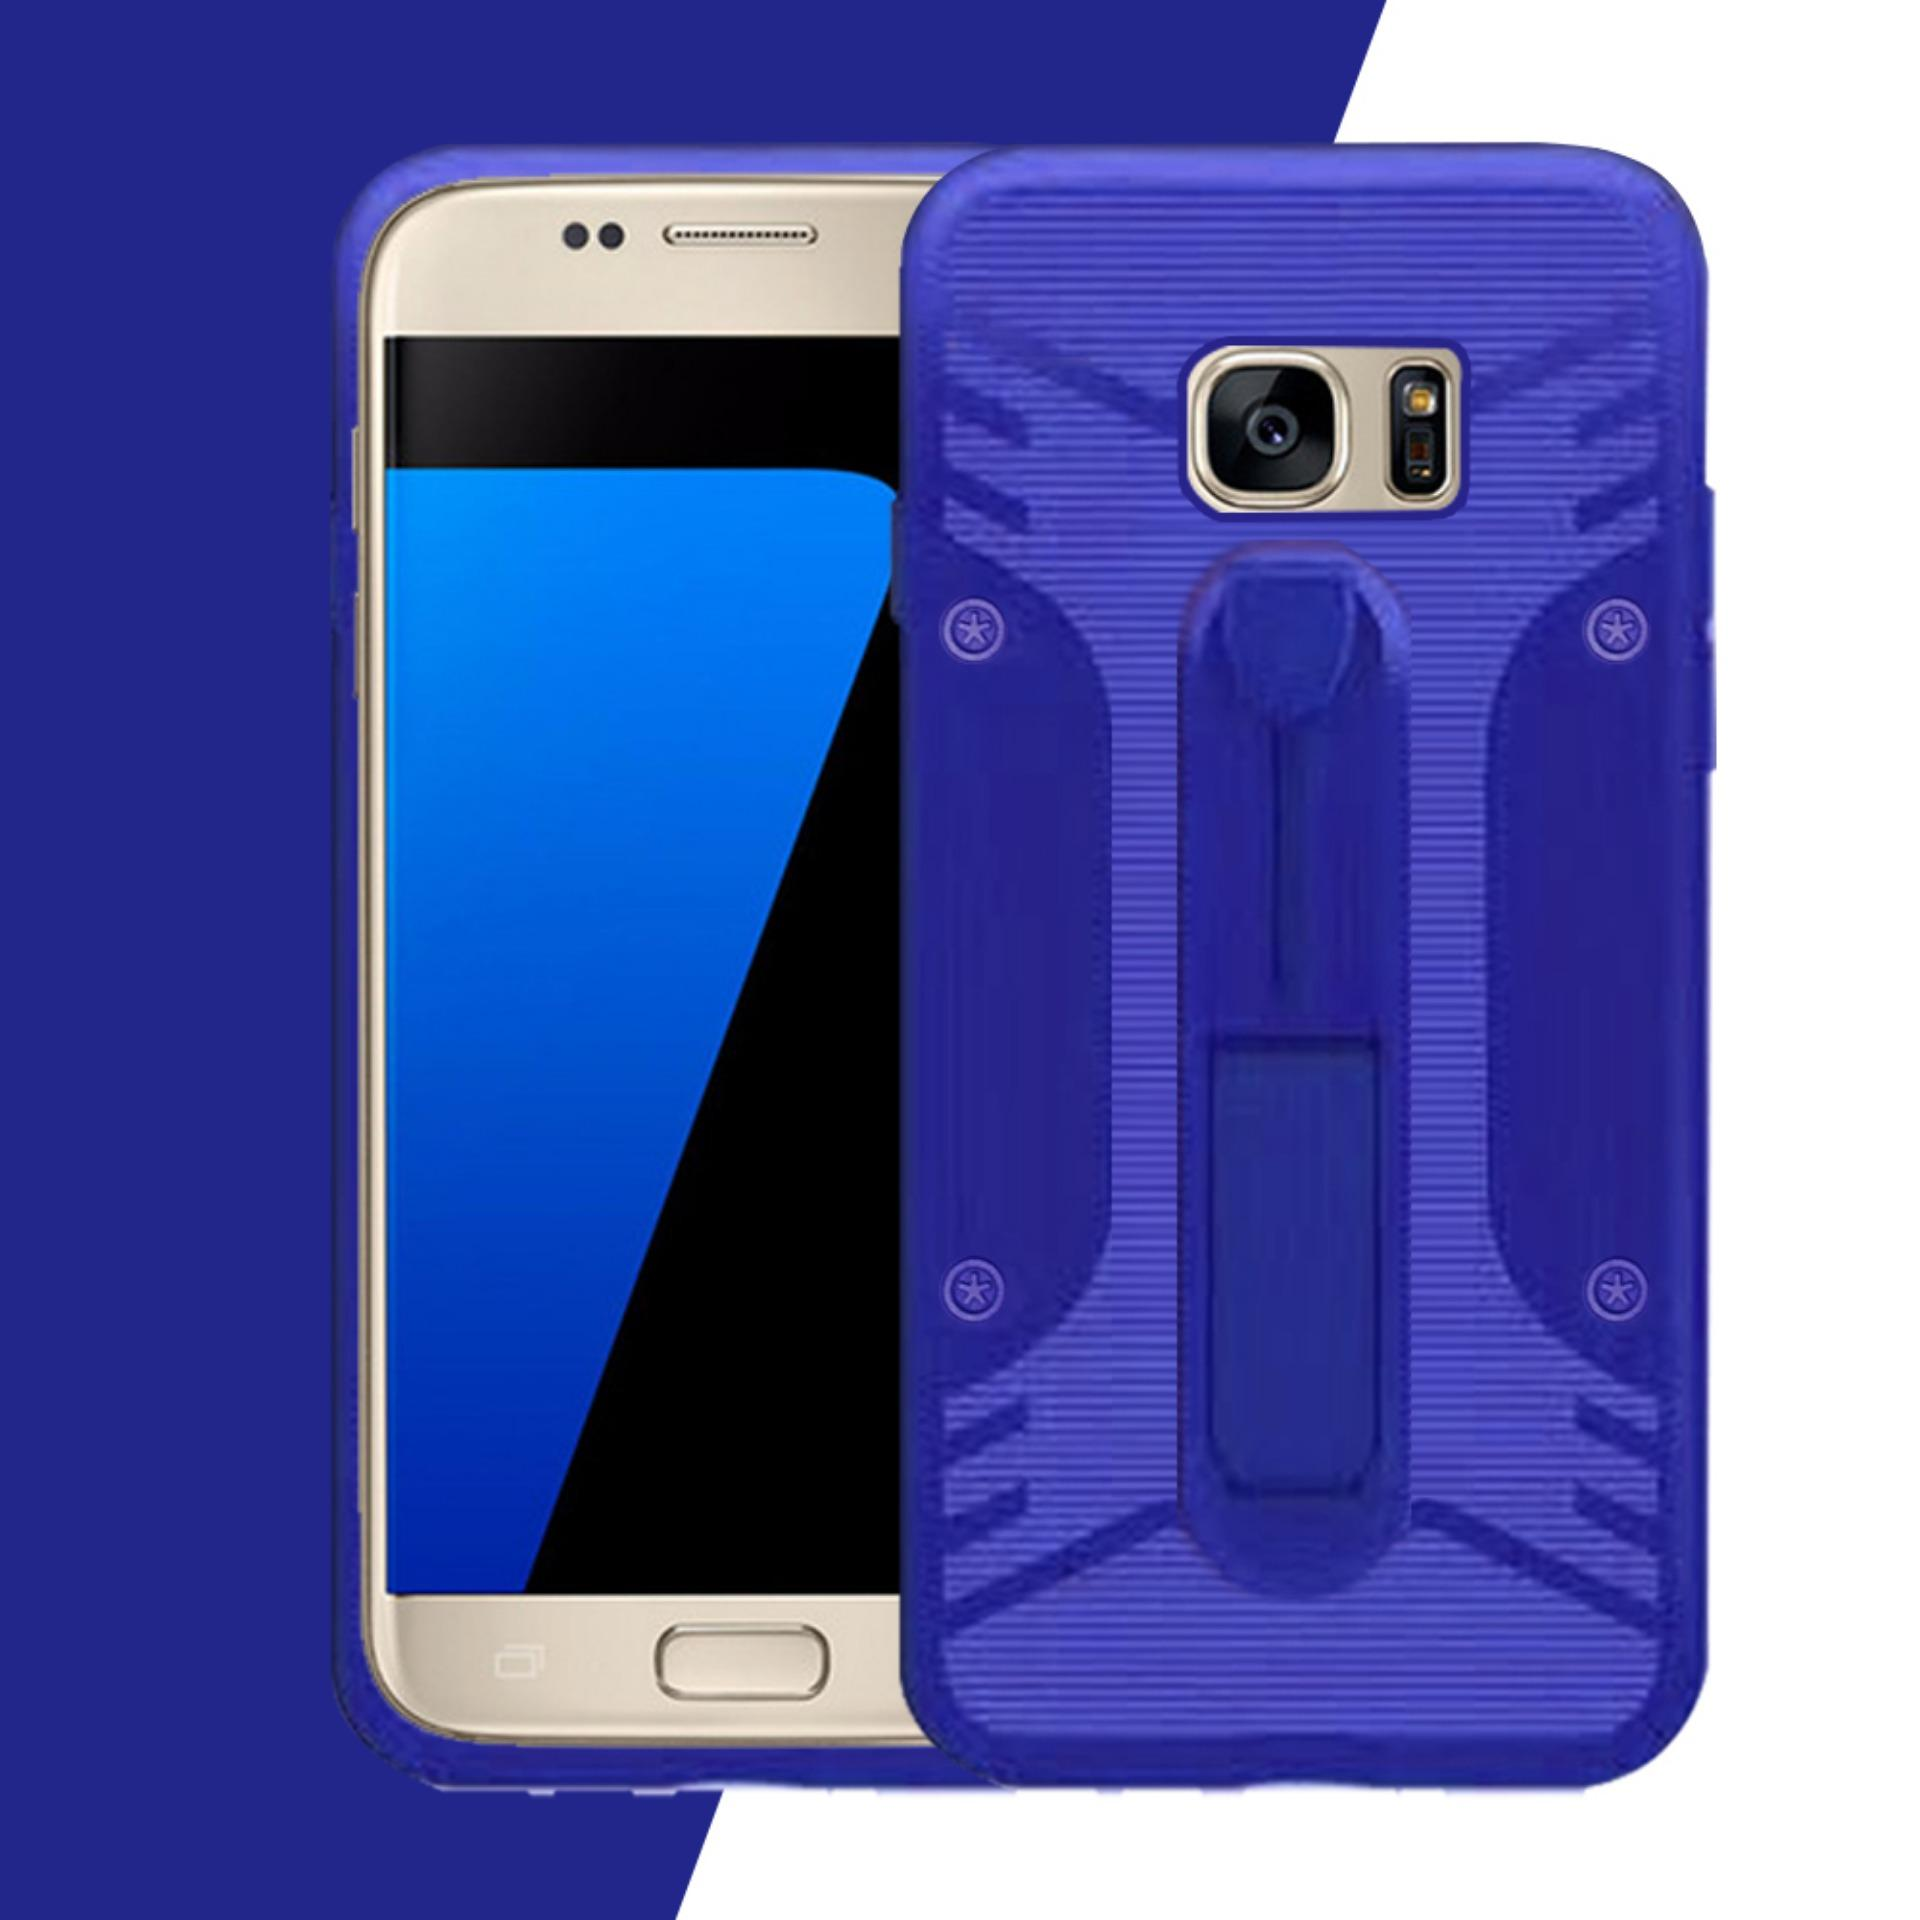 Case Samsung S7 Conure 3in1 Smart Grip COCOSE IPAKY Drop resistance anti Shock Silicone Cover